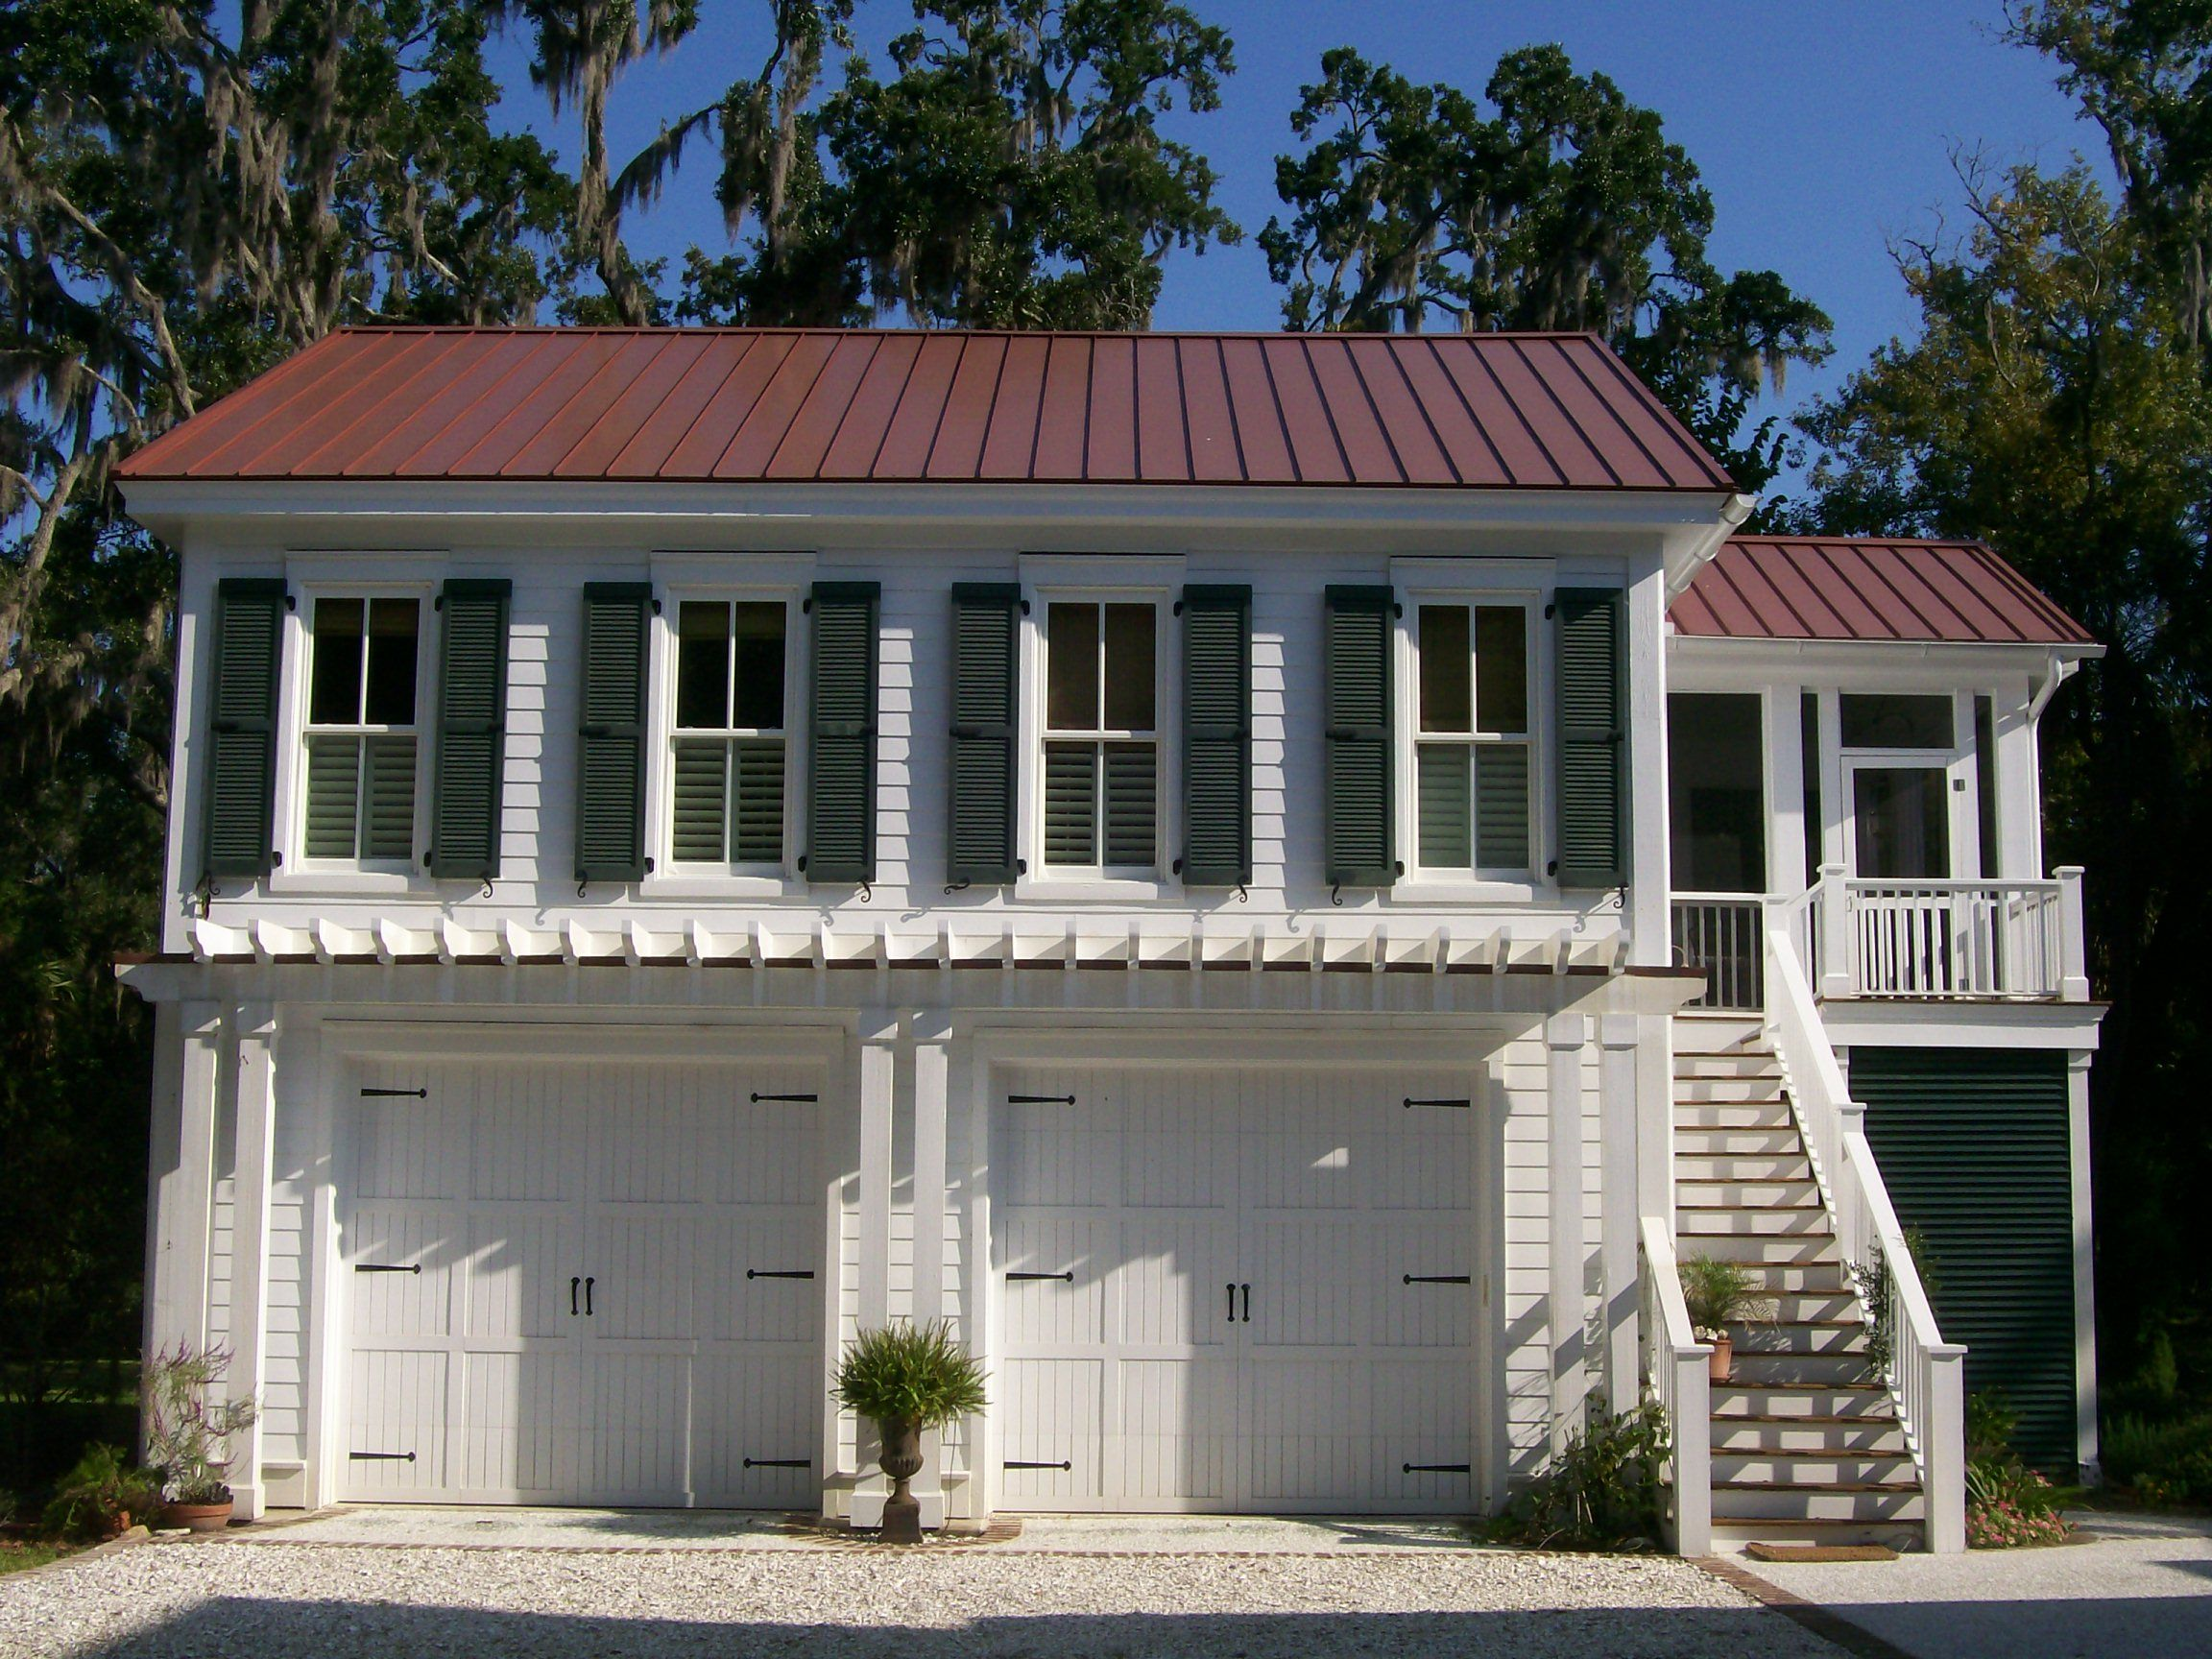 G0087 is a 2 car garage with living space above The overall